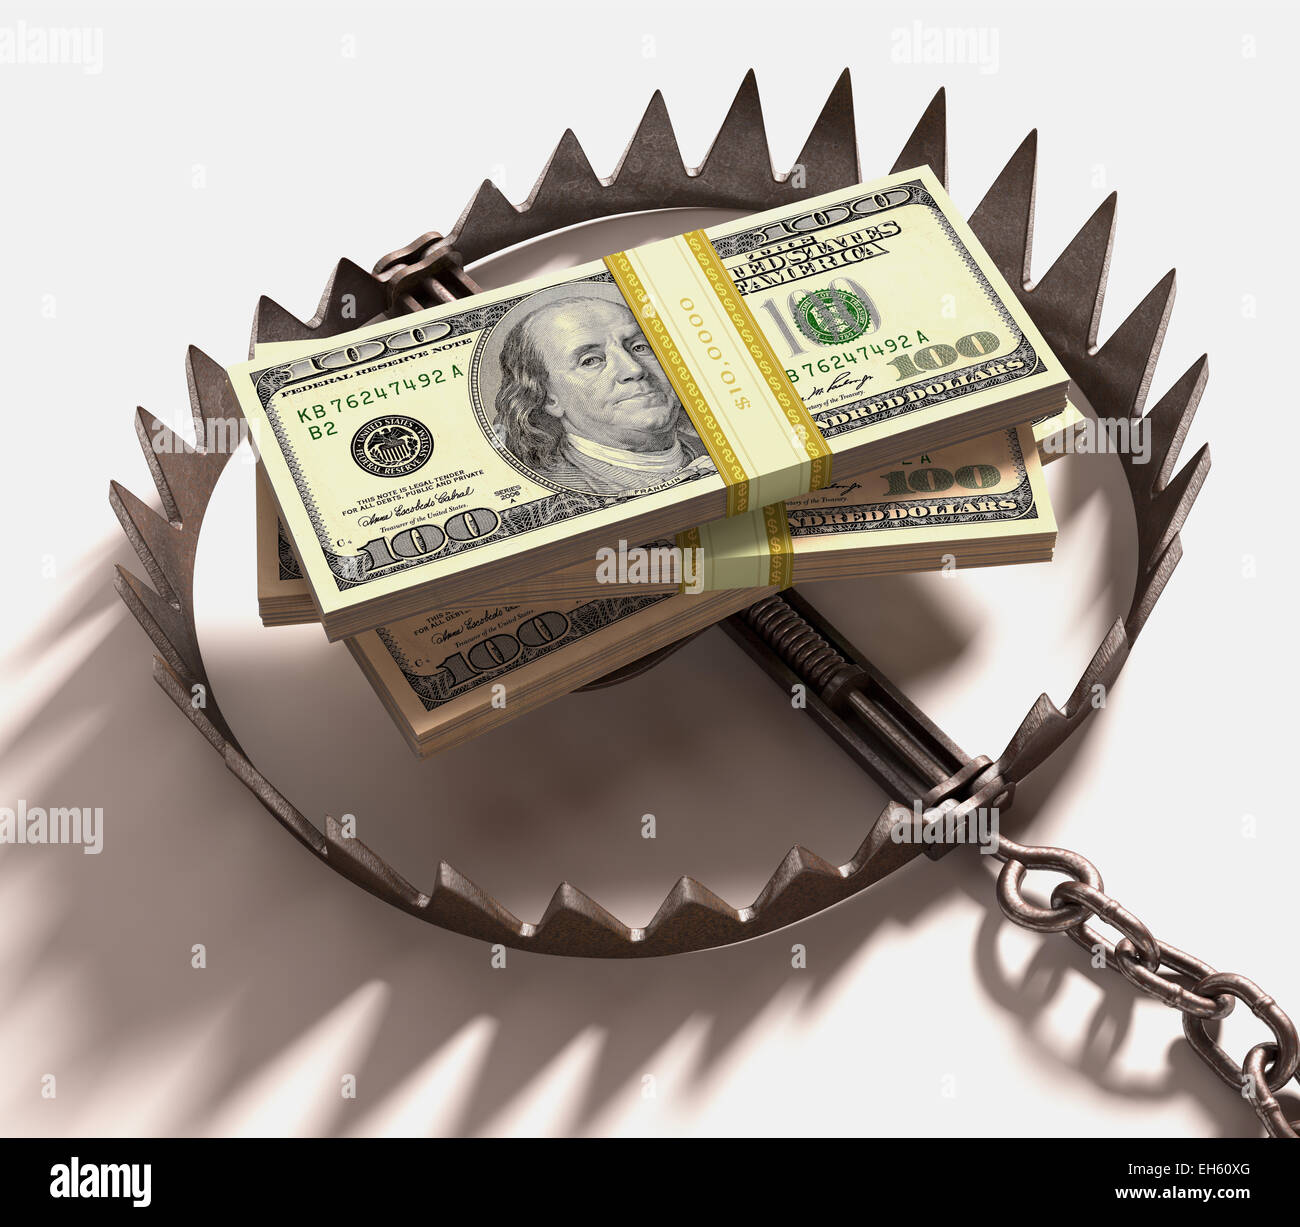 Stack of US dollars into a trap. Clipping path included. - Stock Image